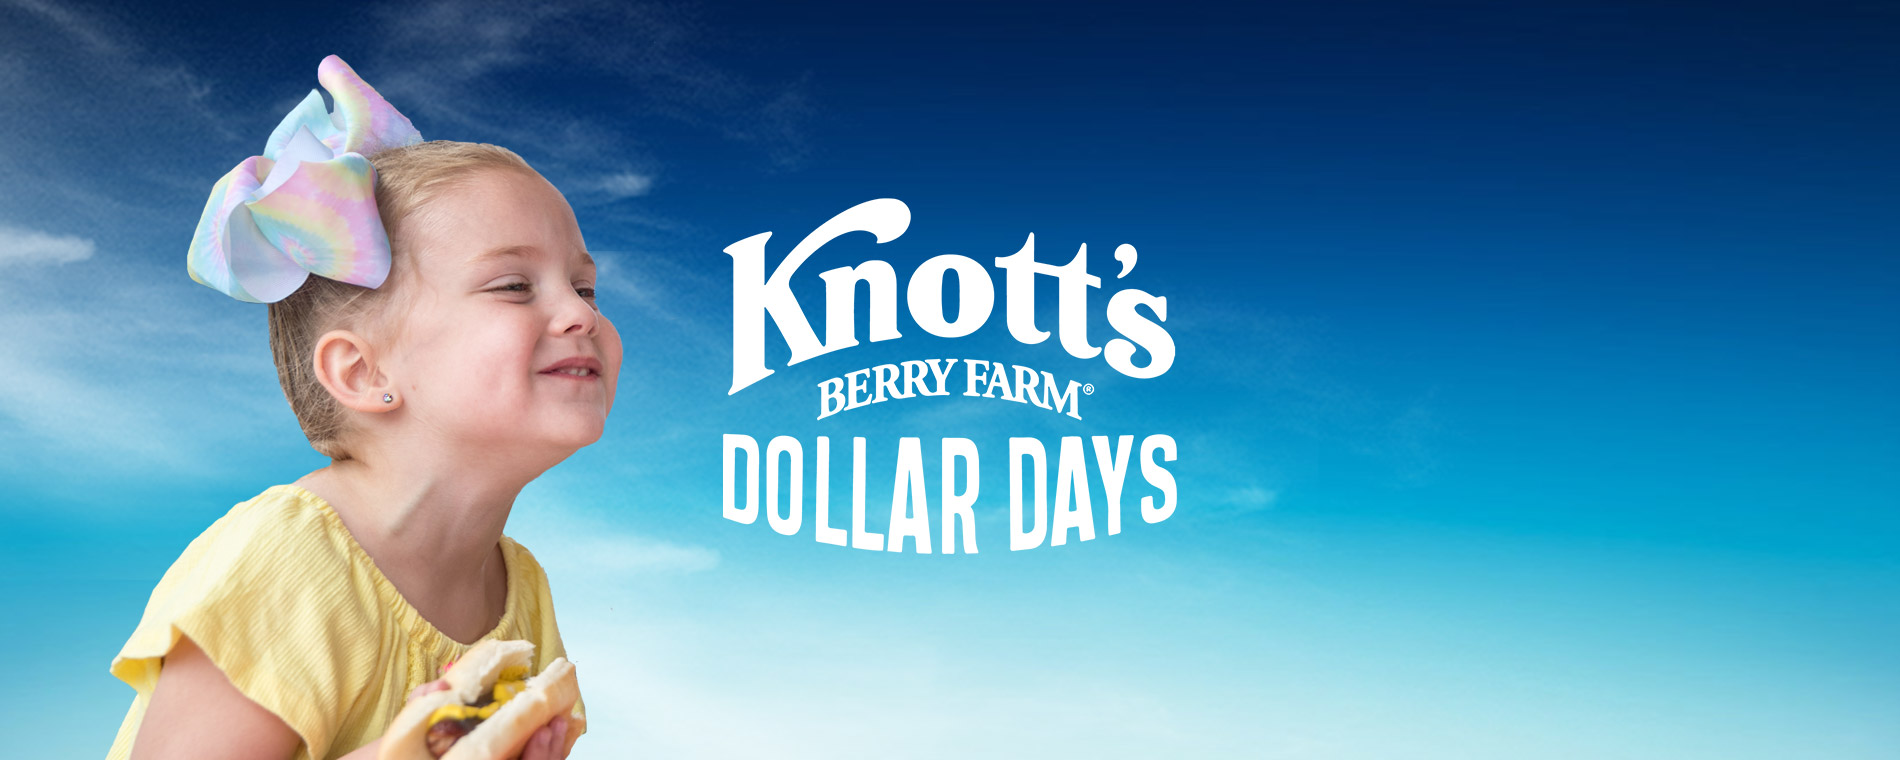 Dollar Days Food & Merchandise Deals at Knott's Berry Farm